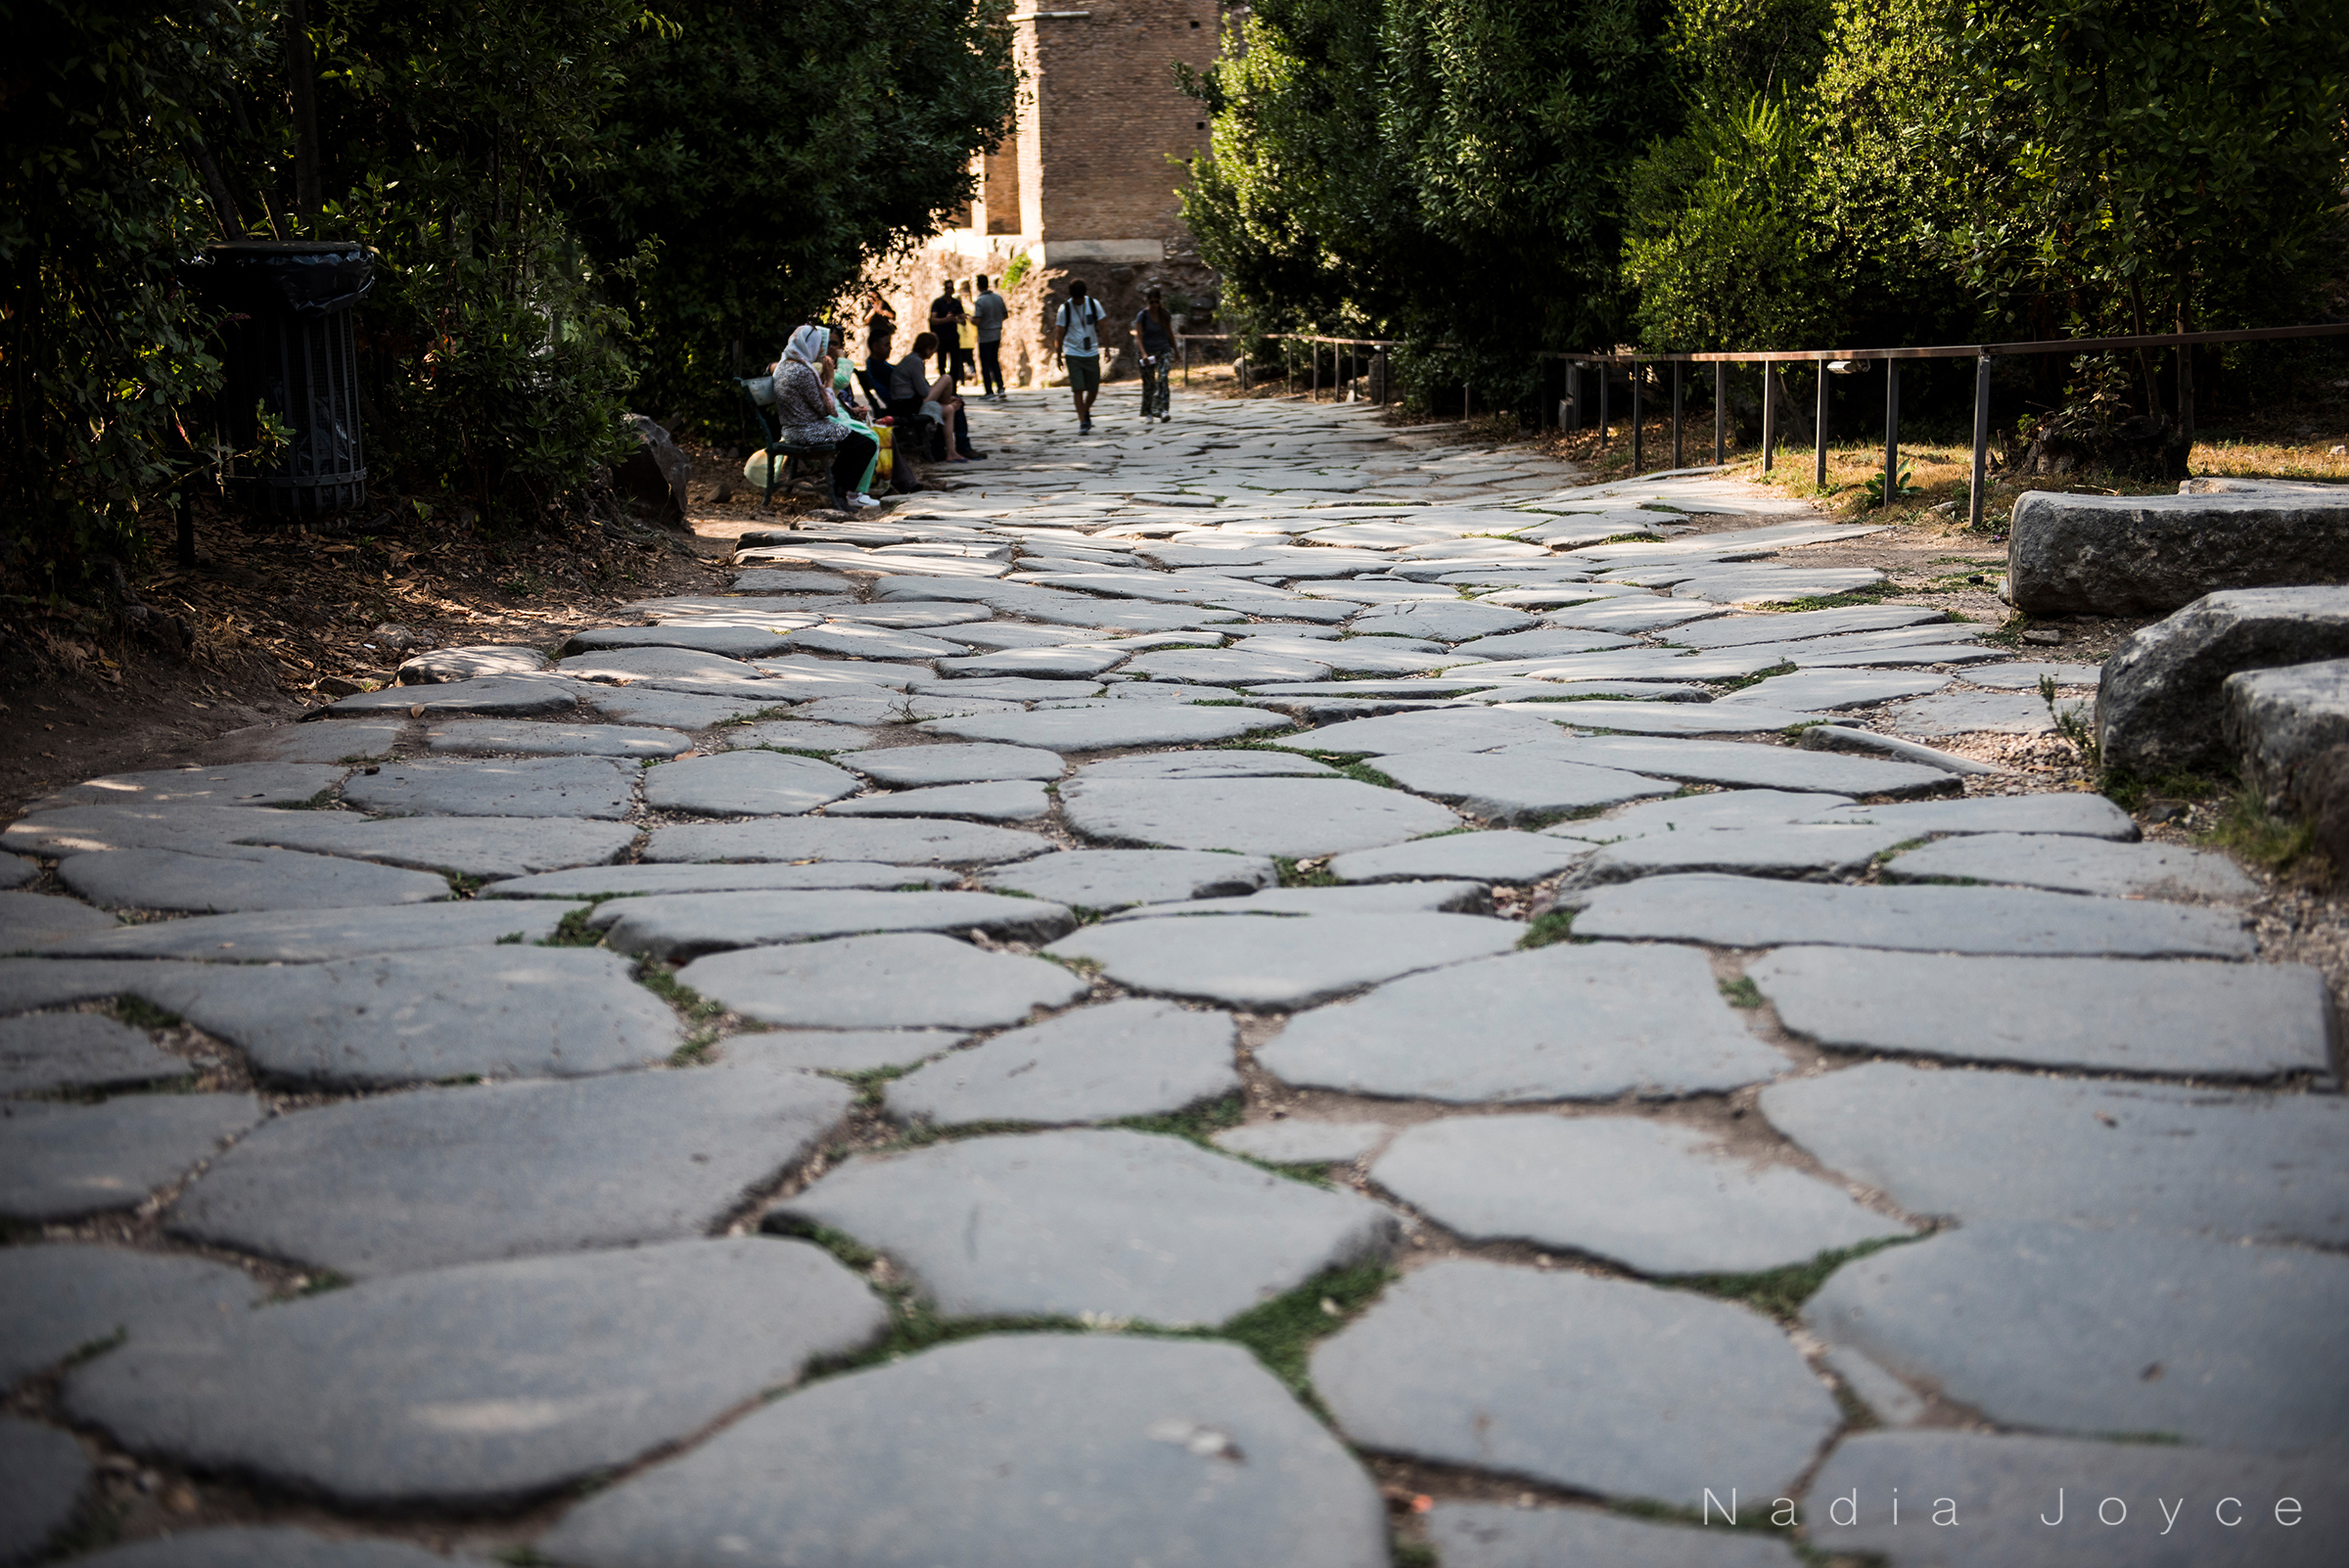 These are the original stone steps leading into the Roman Forum. The cracks used to be tightly knit, but have slowly become worn and spread due to years and years of wear.